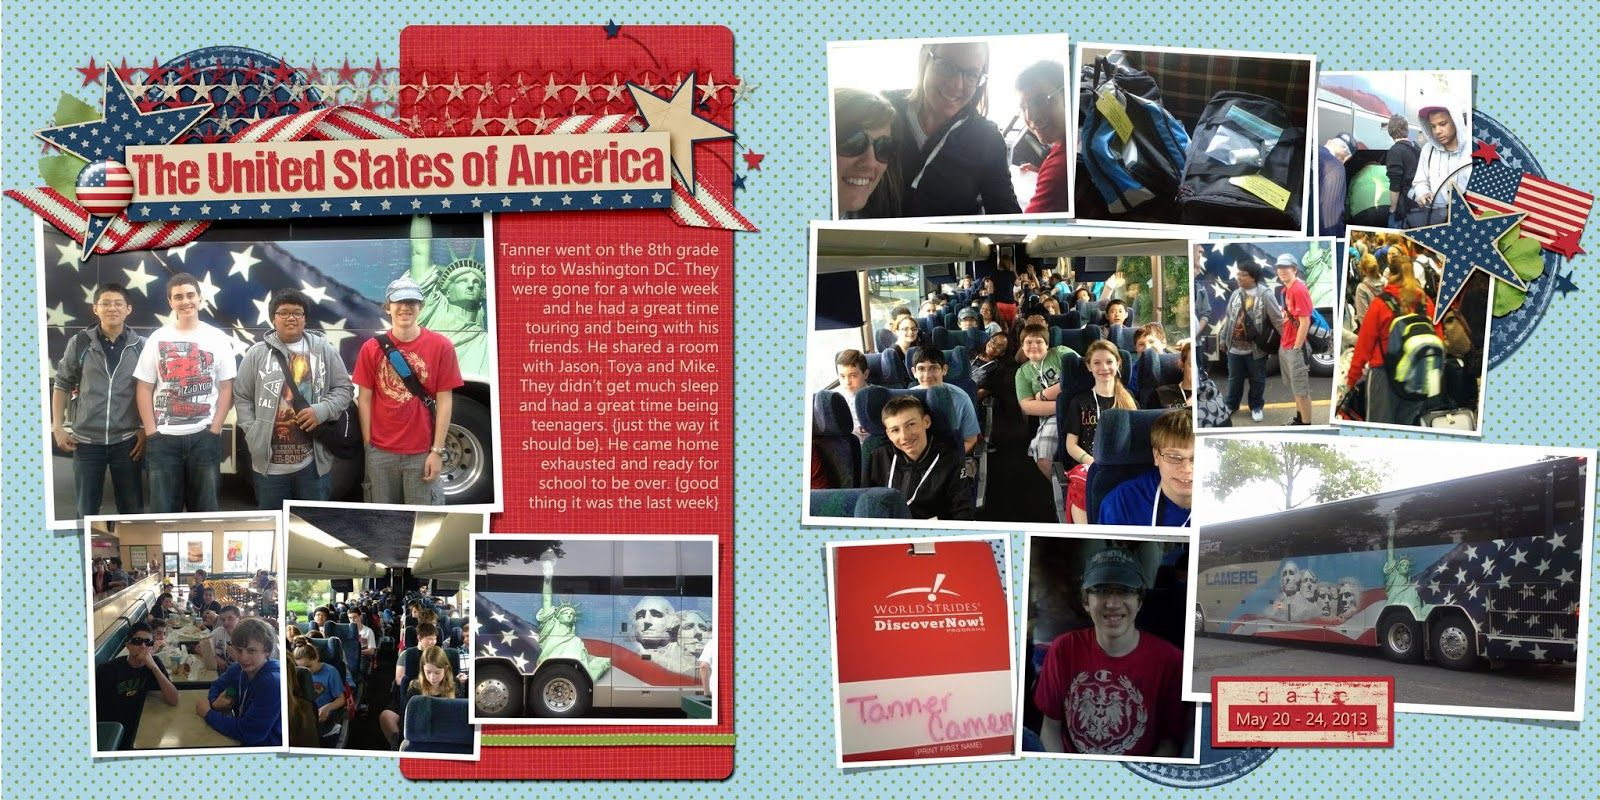 Liberty's Layouts: Washington DC - Tanner's 8th Grade Trip